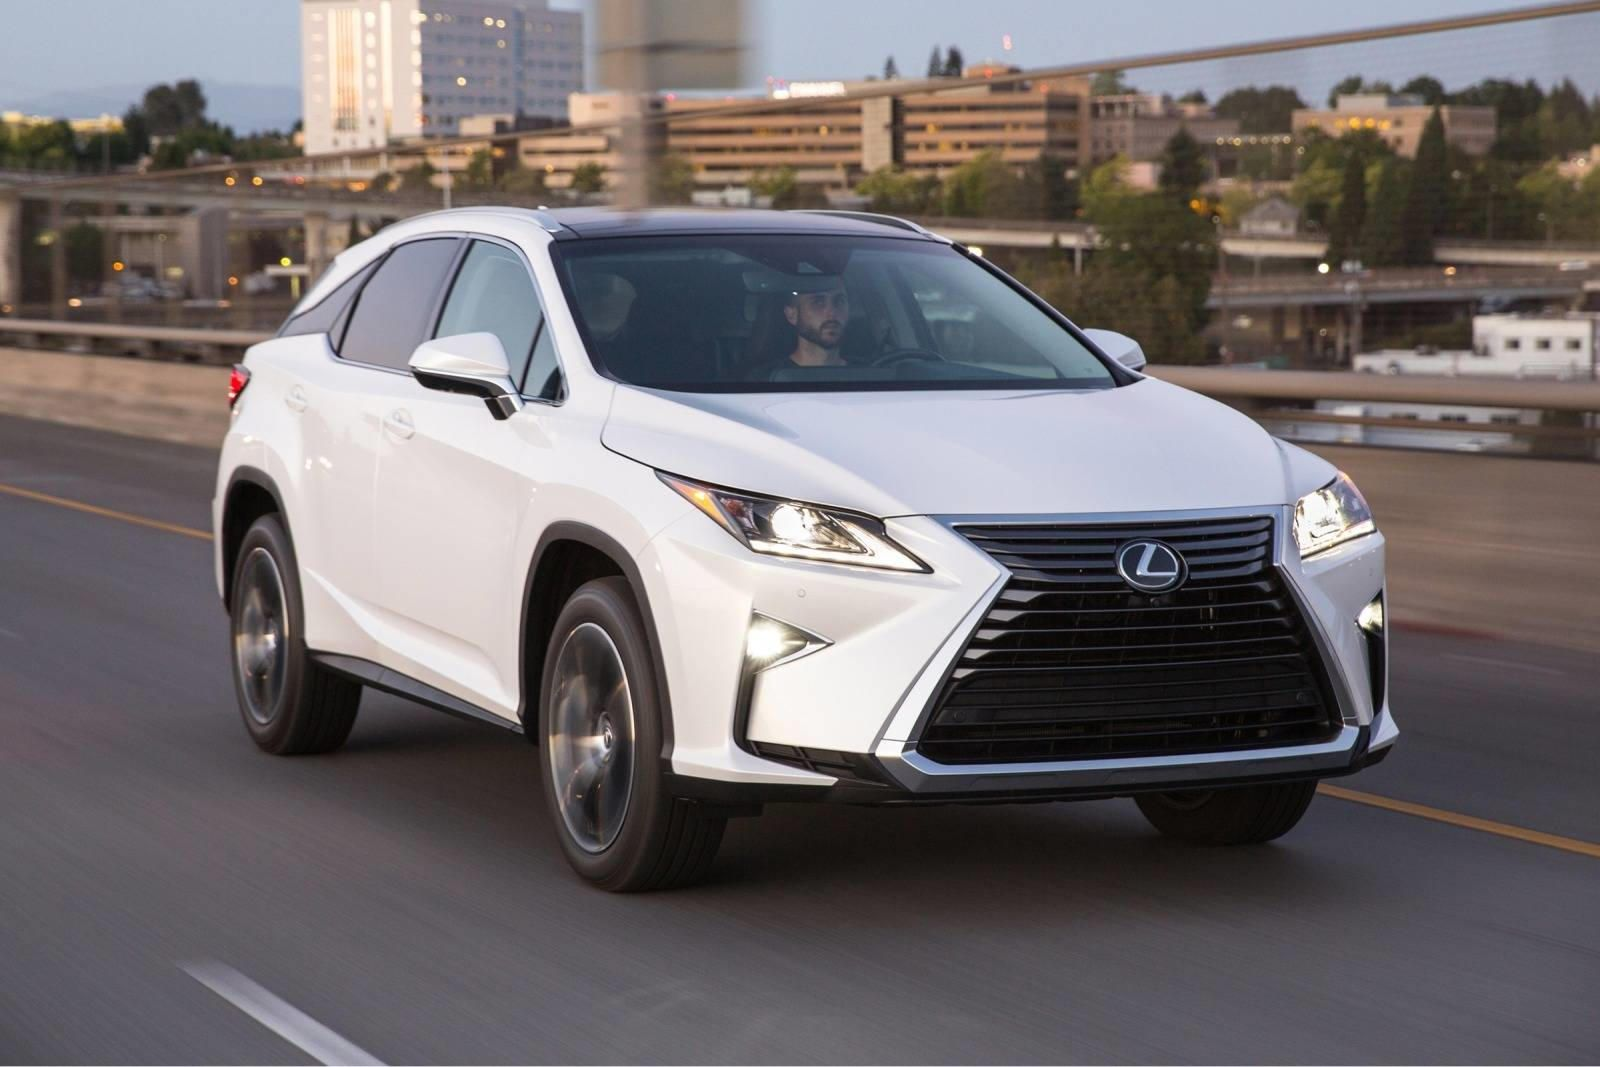 2020 Lexus Rx Test Drive Review A Much Needed Touch Up In 2020 Lexus Lexus Cars Lexus Rx 350